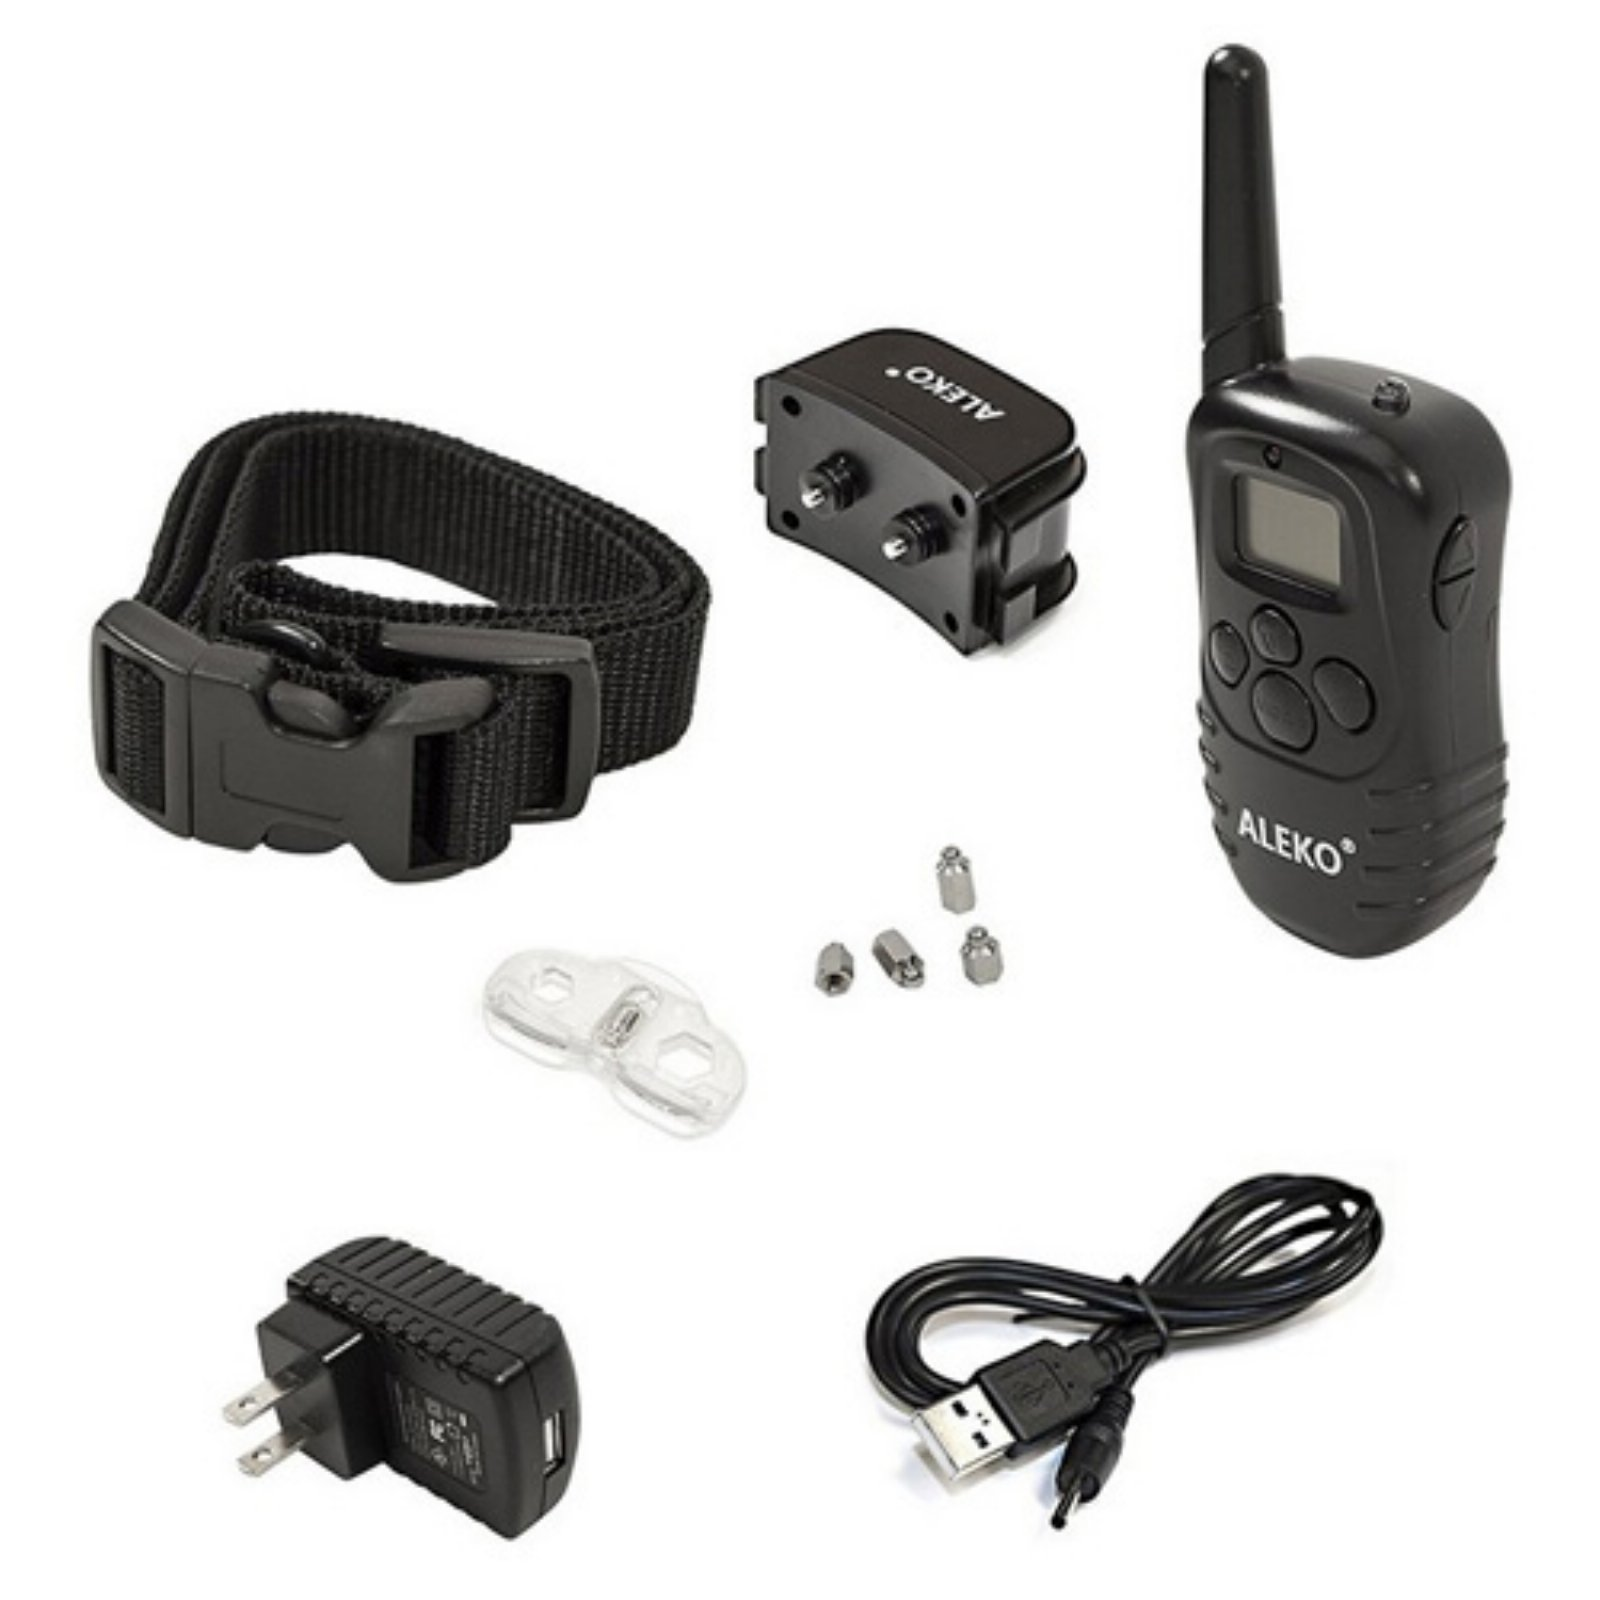 ALEKO TS-TC738 Remote Dog Training Collar Rechargeable and Waterproof Pet Training Device